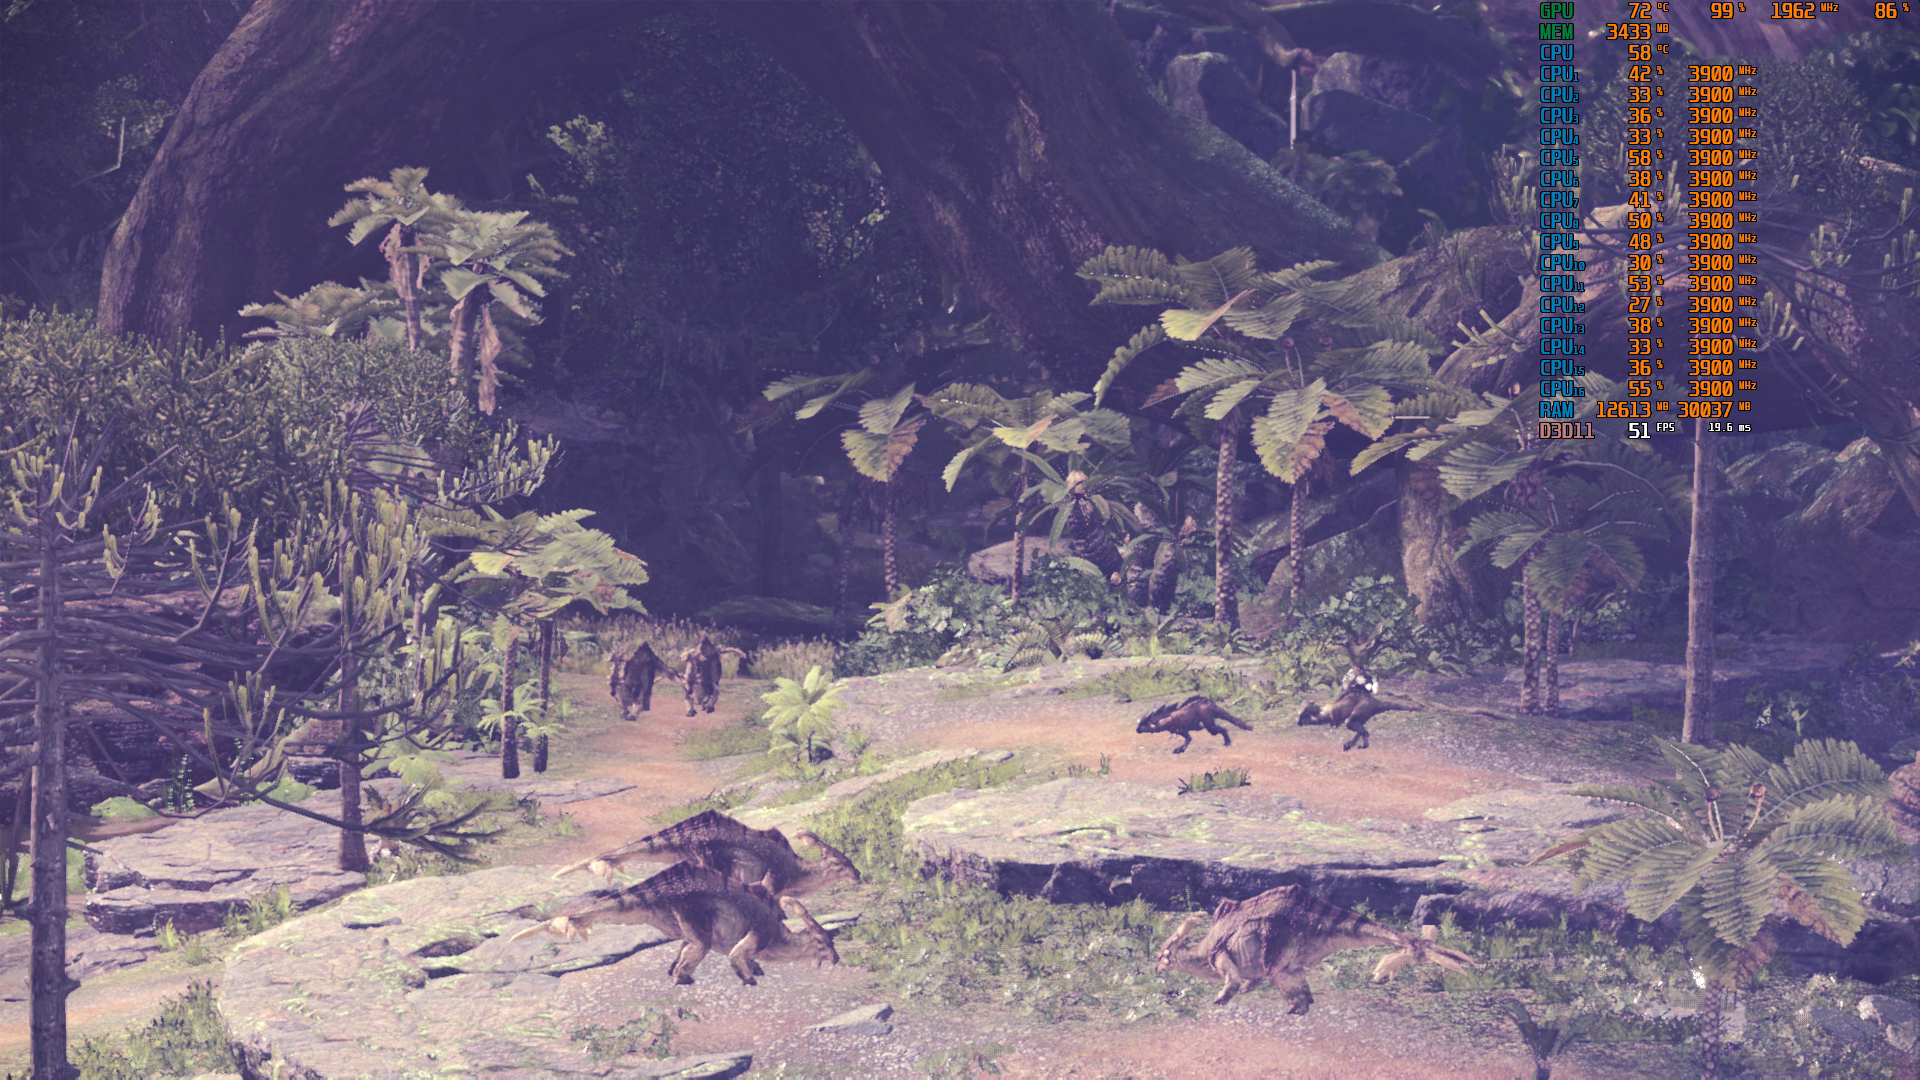 What does it take to run Monster Hunter World on PC at 1080p60